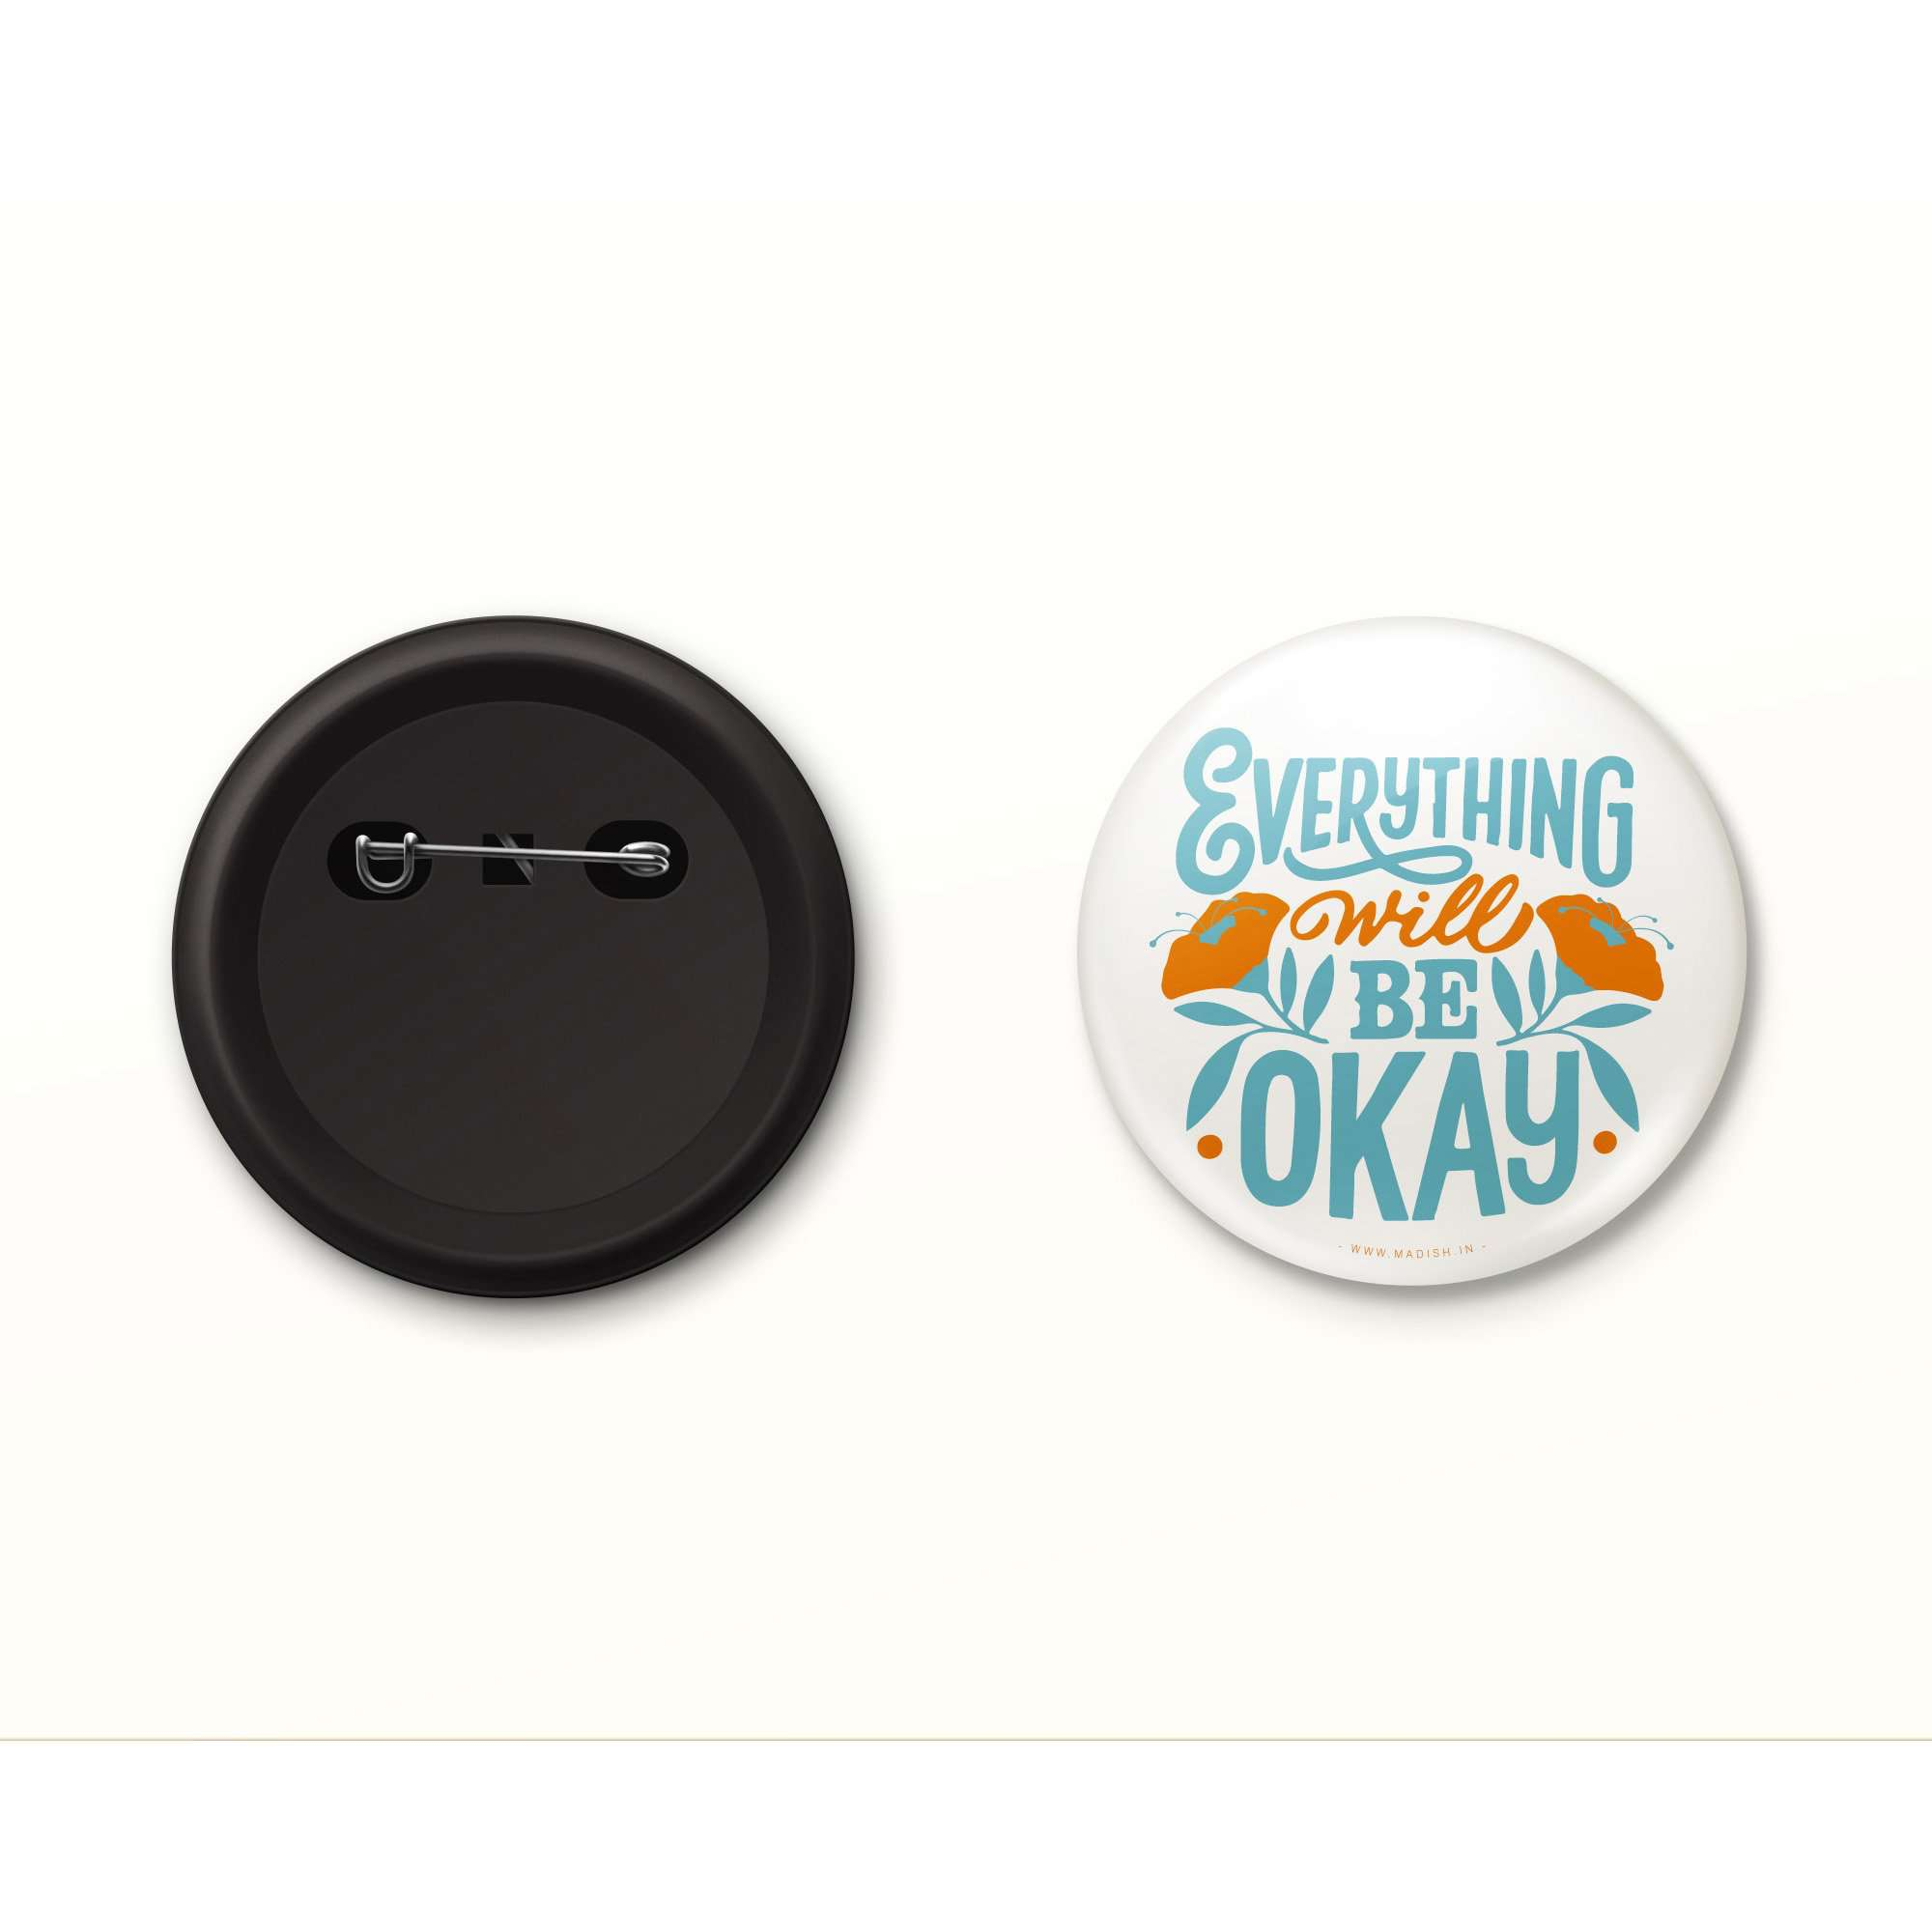 Everything will be Okay Button Badge Accessories Madish